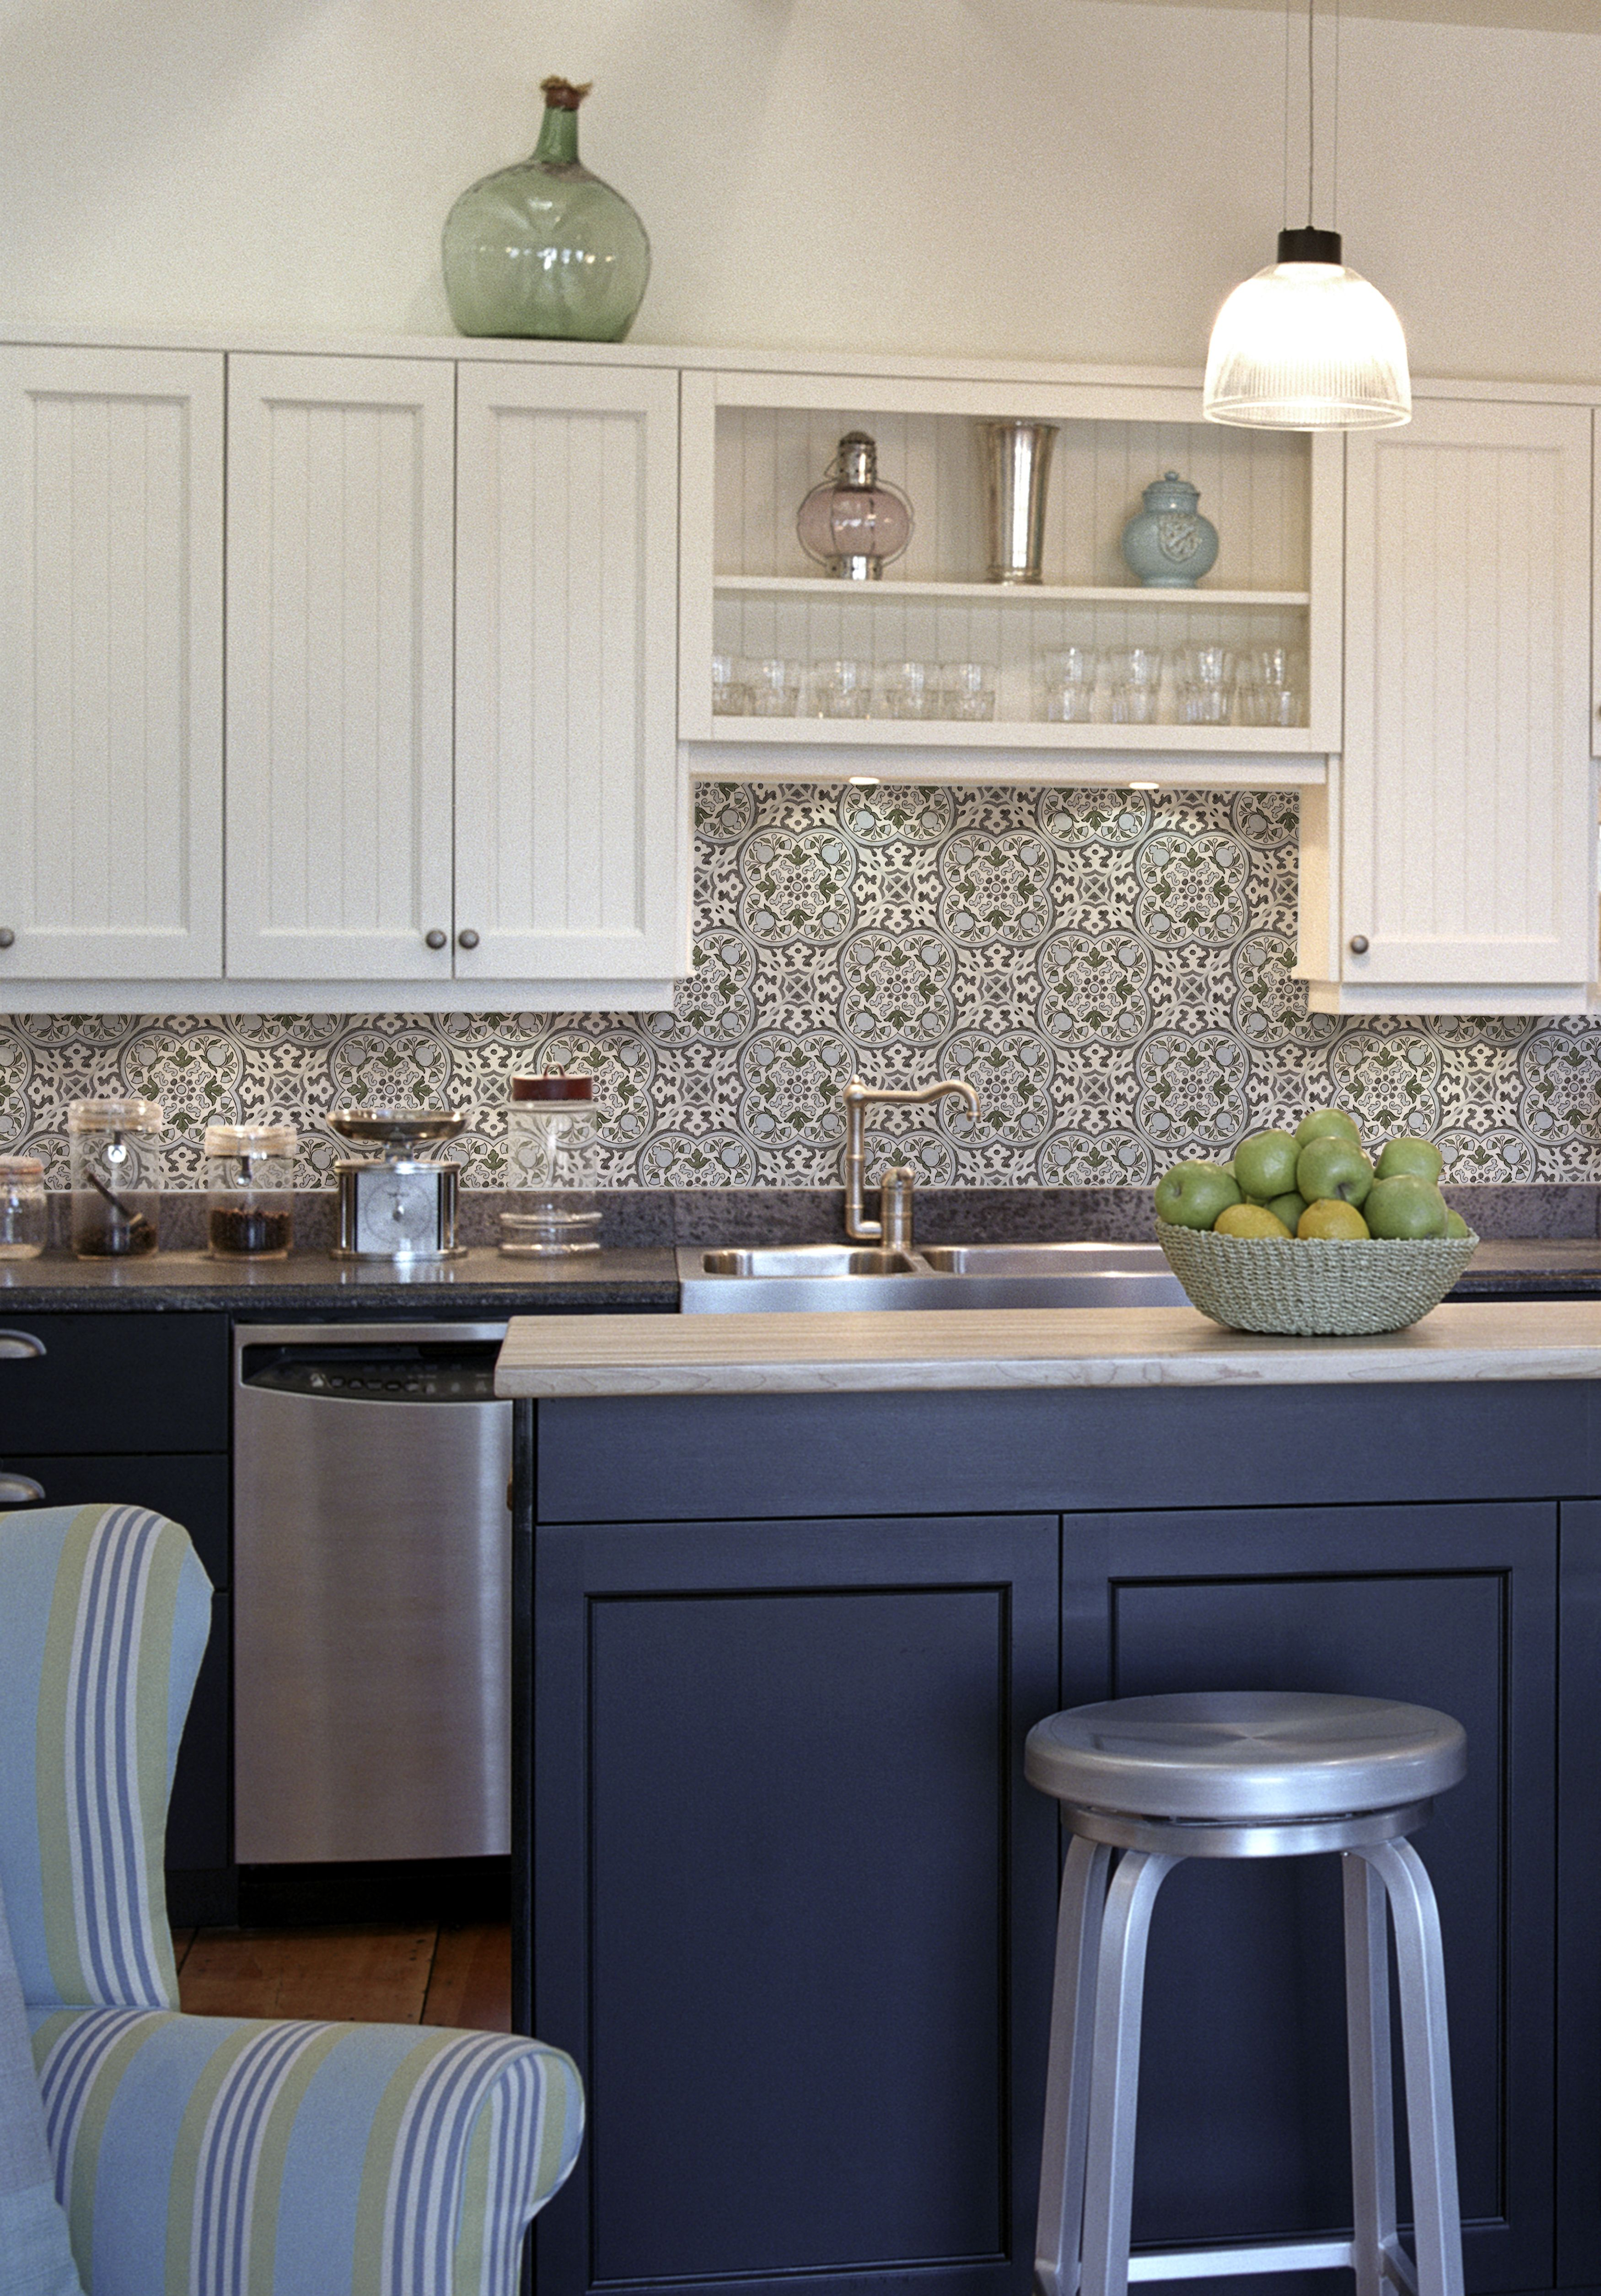 Holland Blue Grey On Carrara Backsplash Kitchen White Cabinets